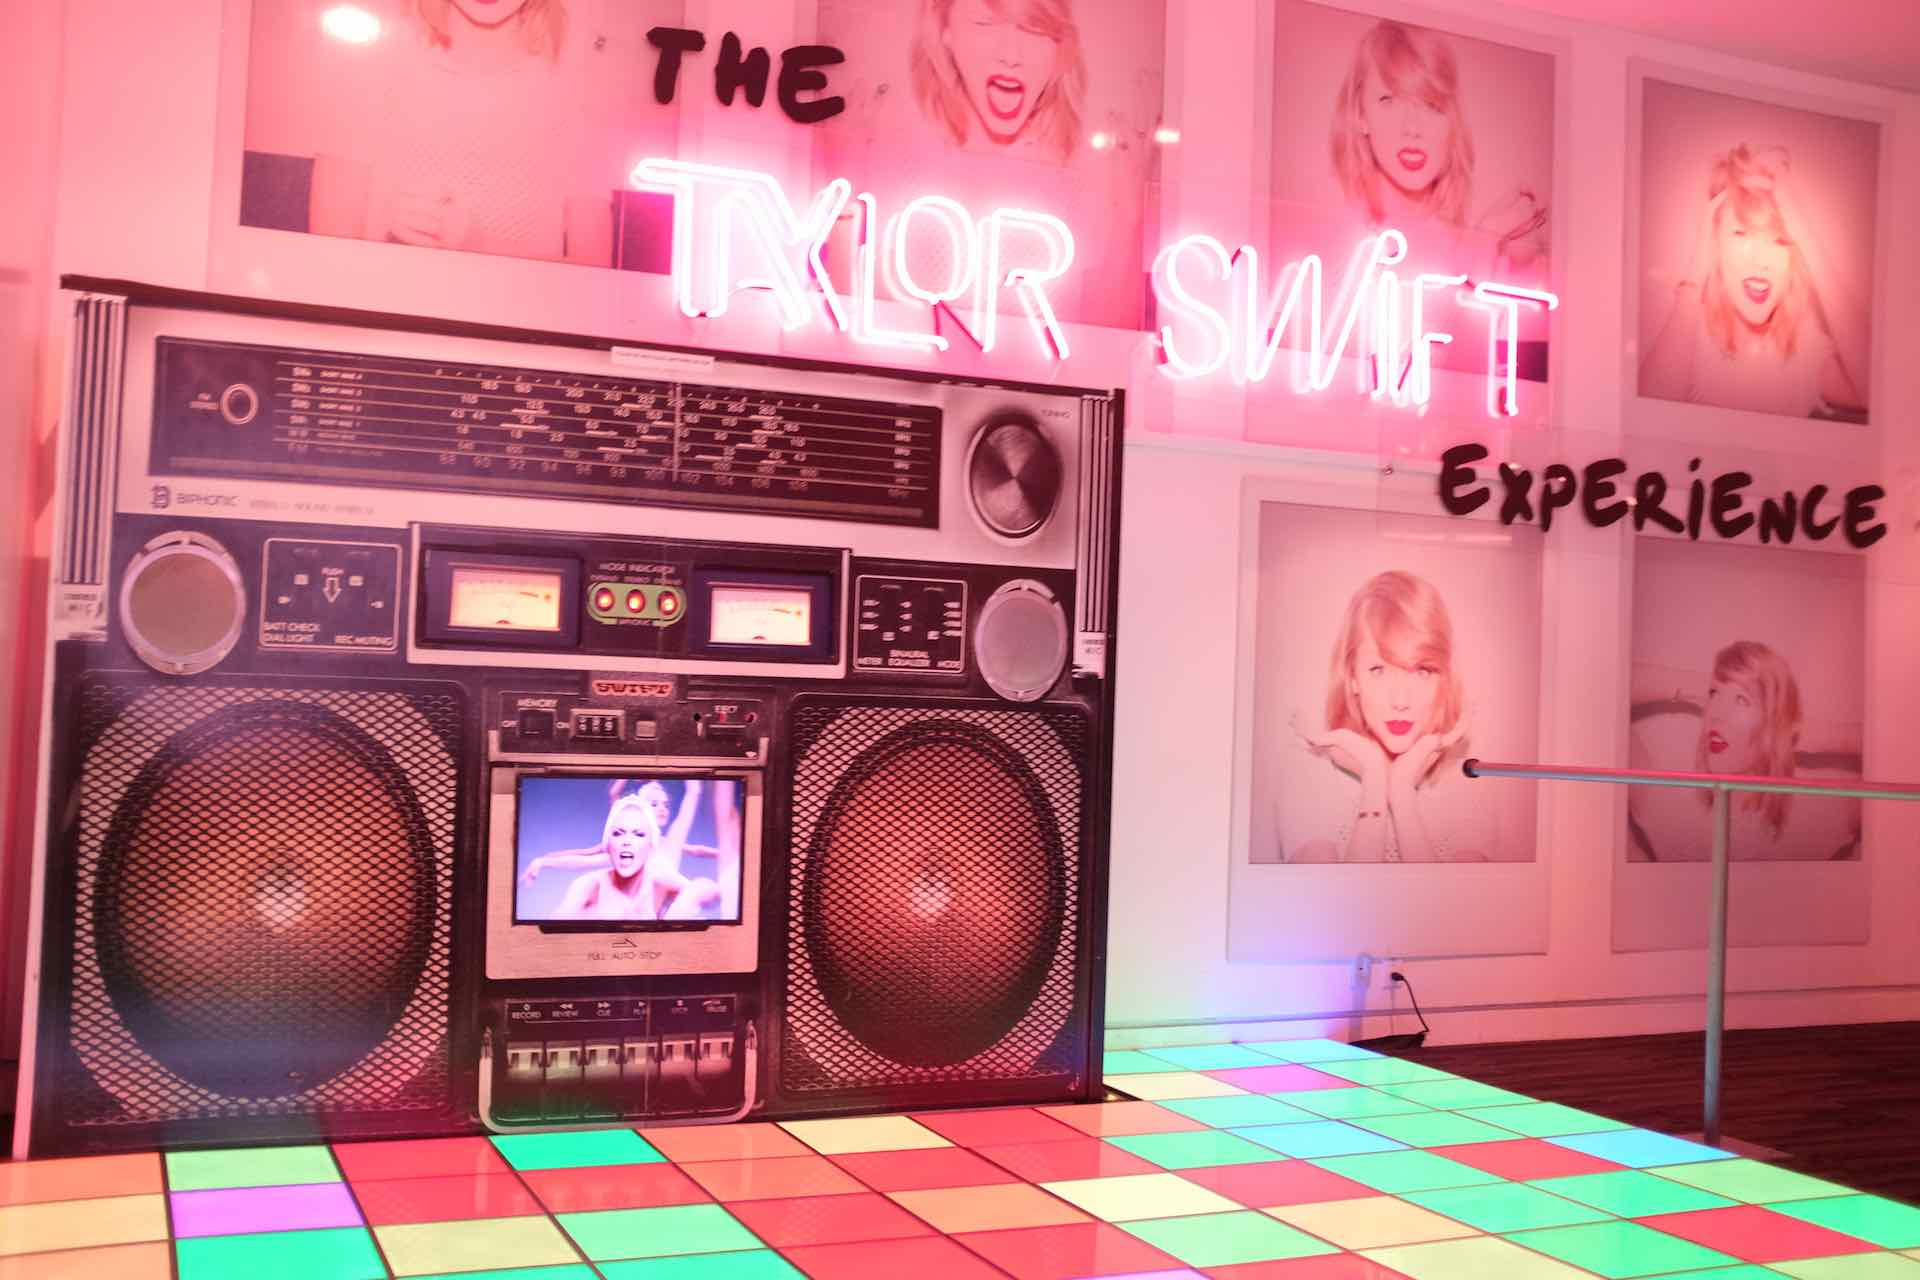 Boombox for The Taylor Swift Experience